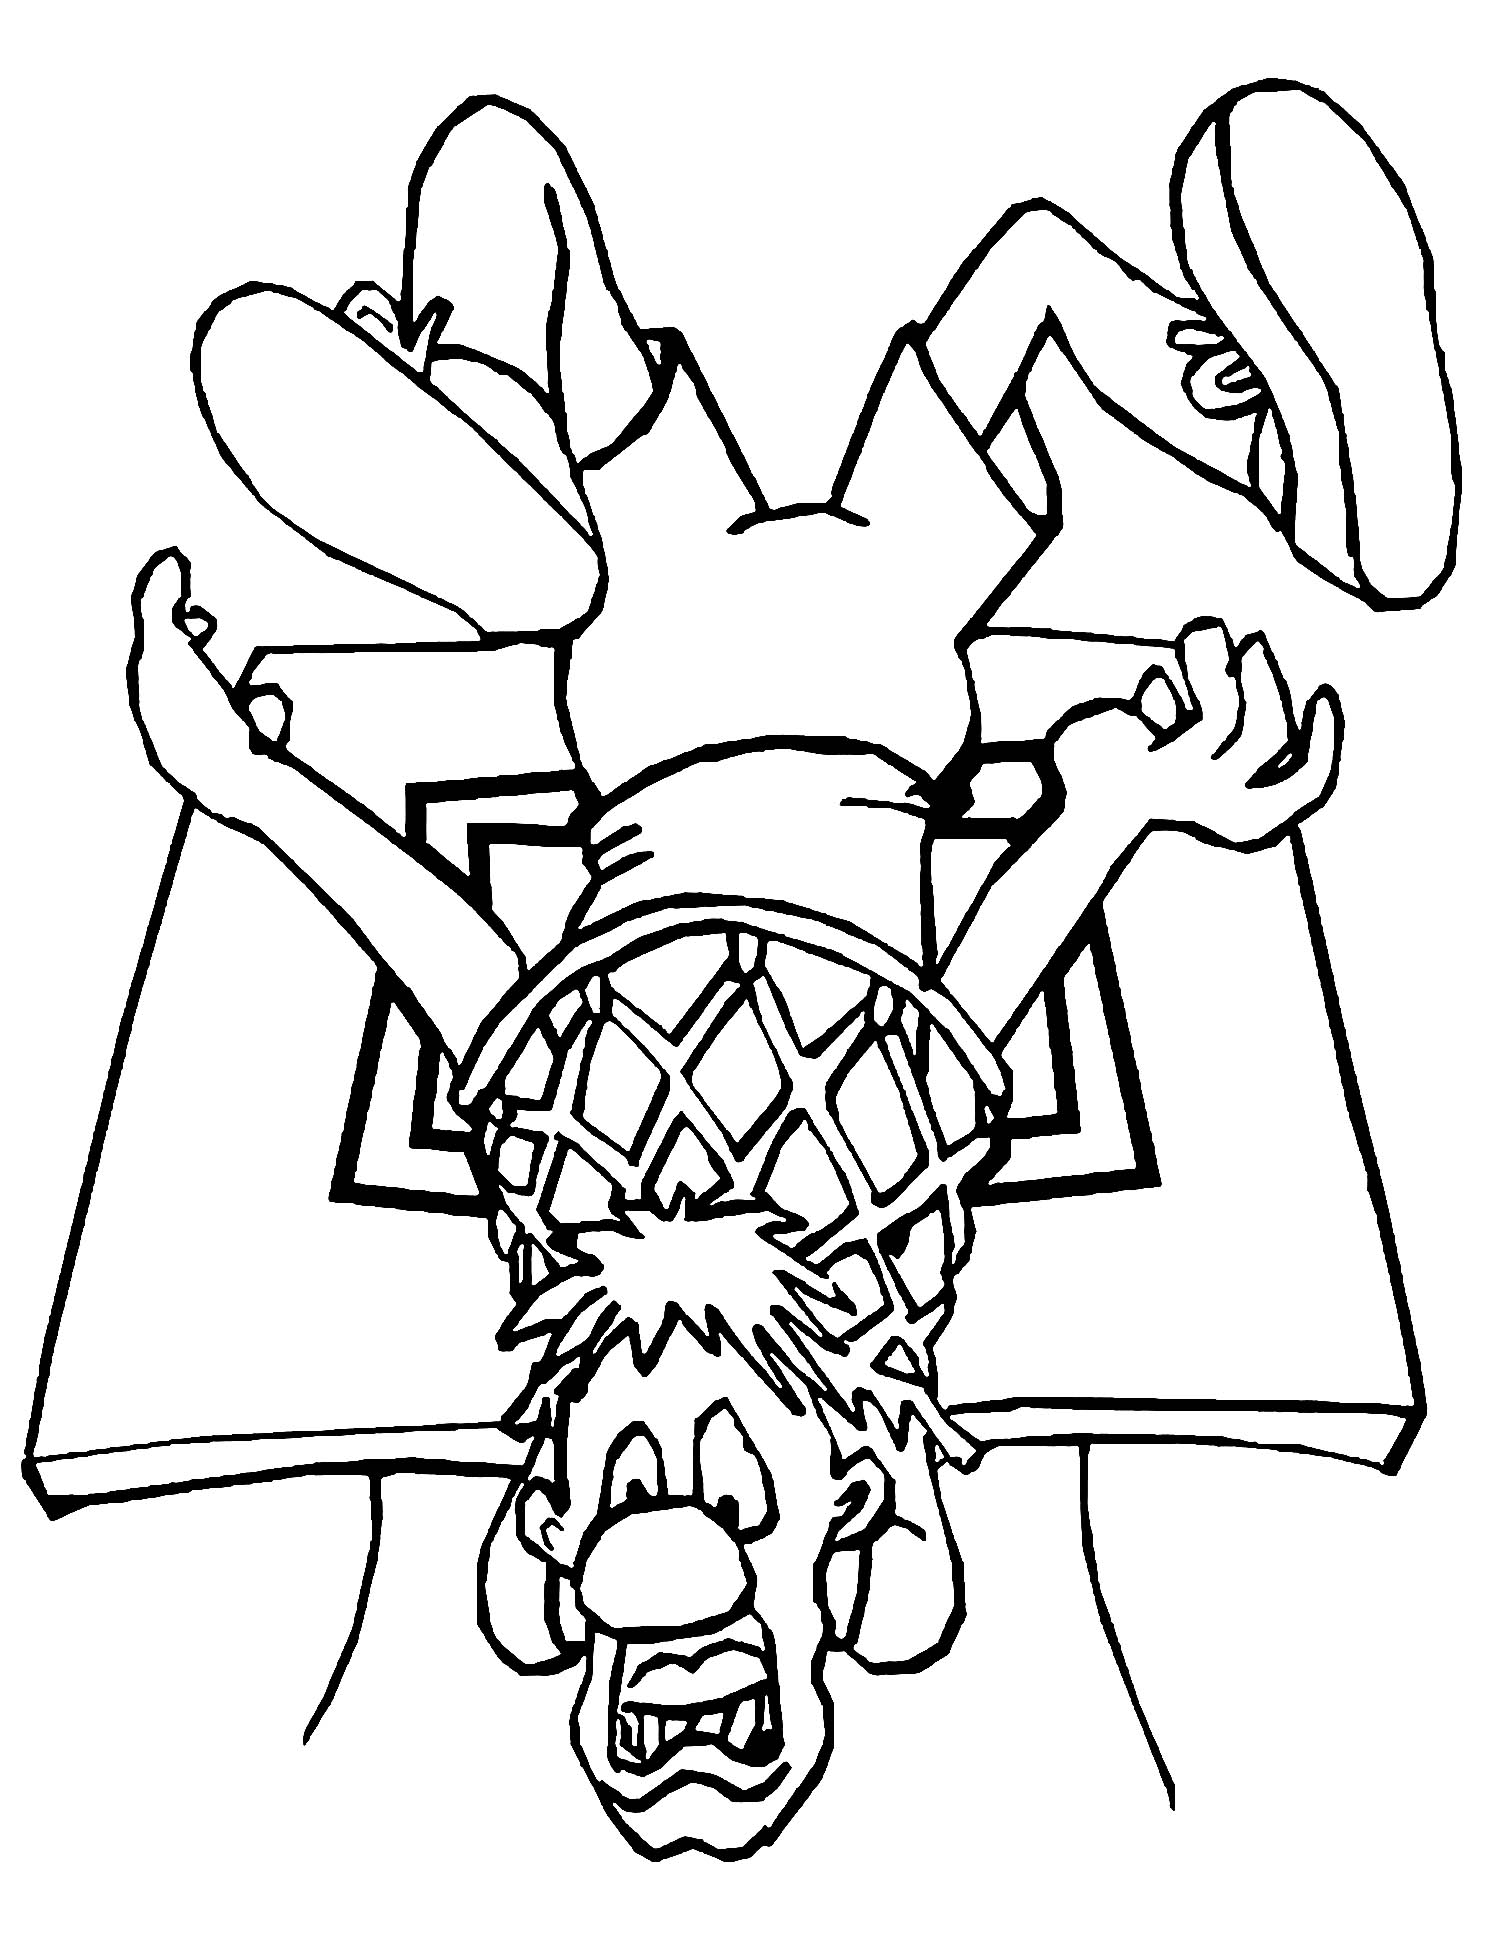 coloring pages of basketball 30 free printable basketball coloring pages basketball coloring pages of